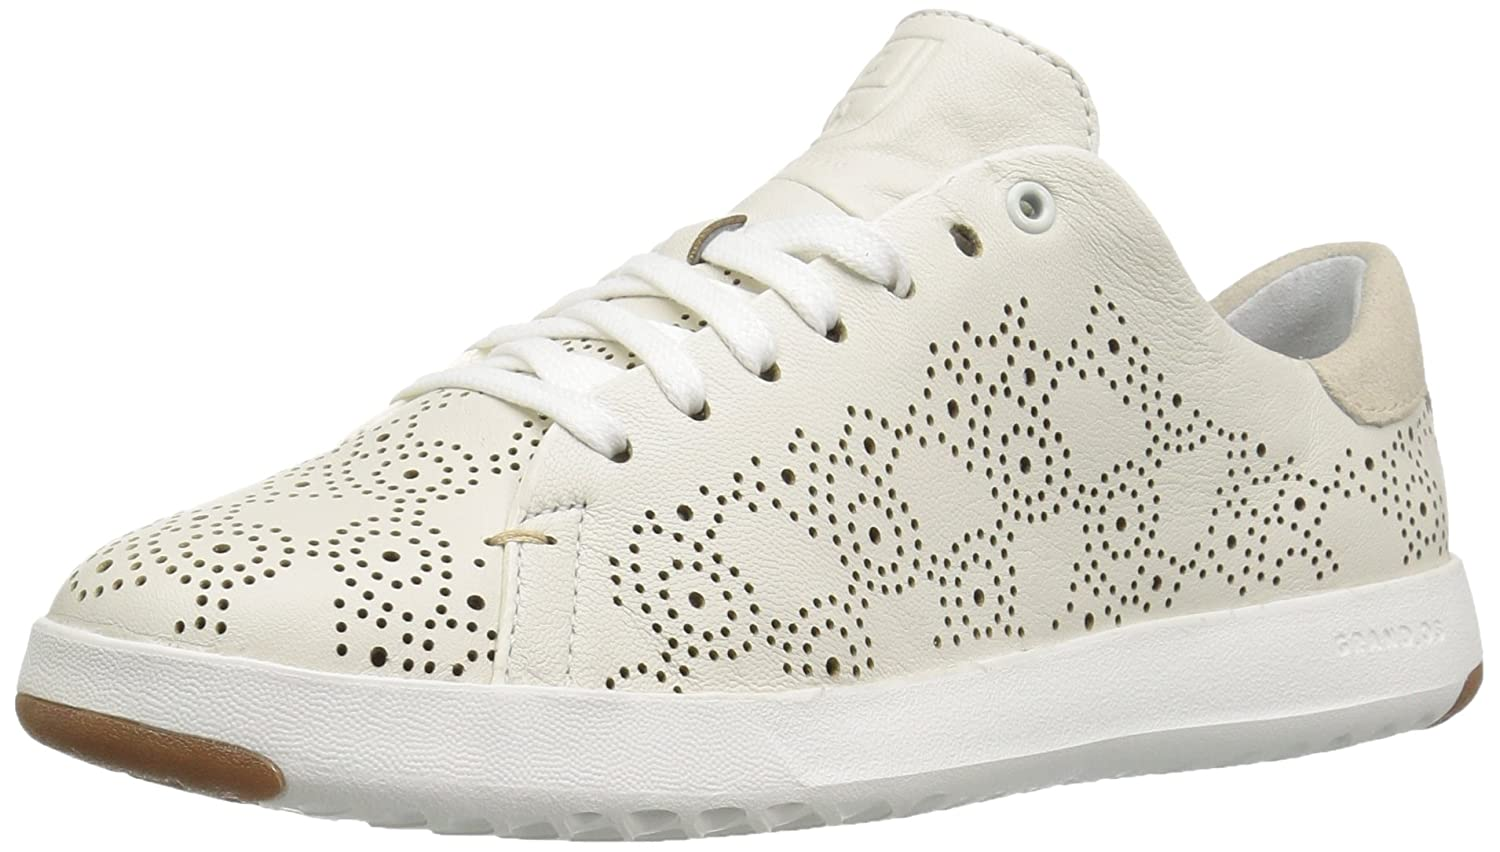 Cole Haan Women's Grandpro Paisley Perforated Fashion Sneaker B01N23T5YW 11 B(M) US|White